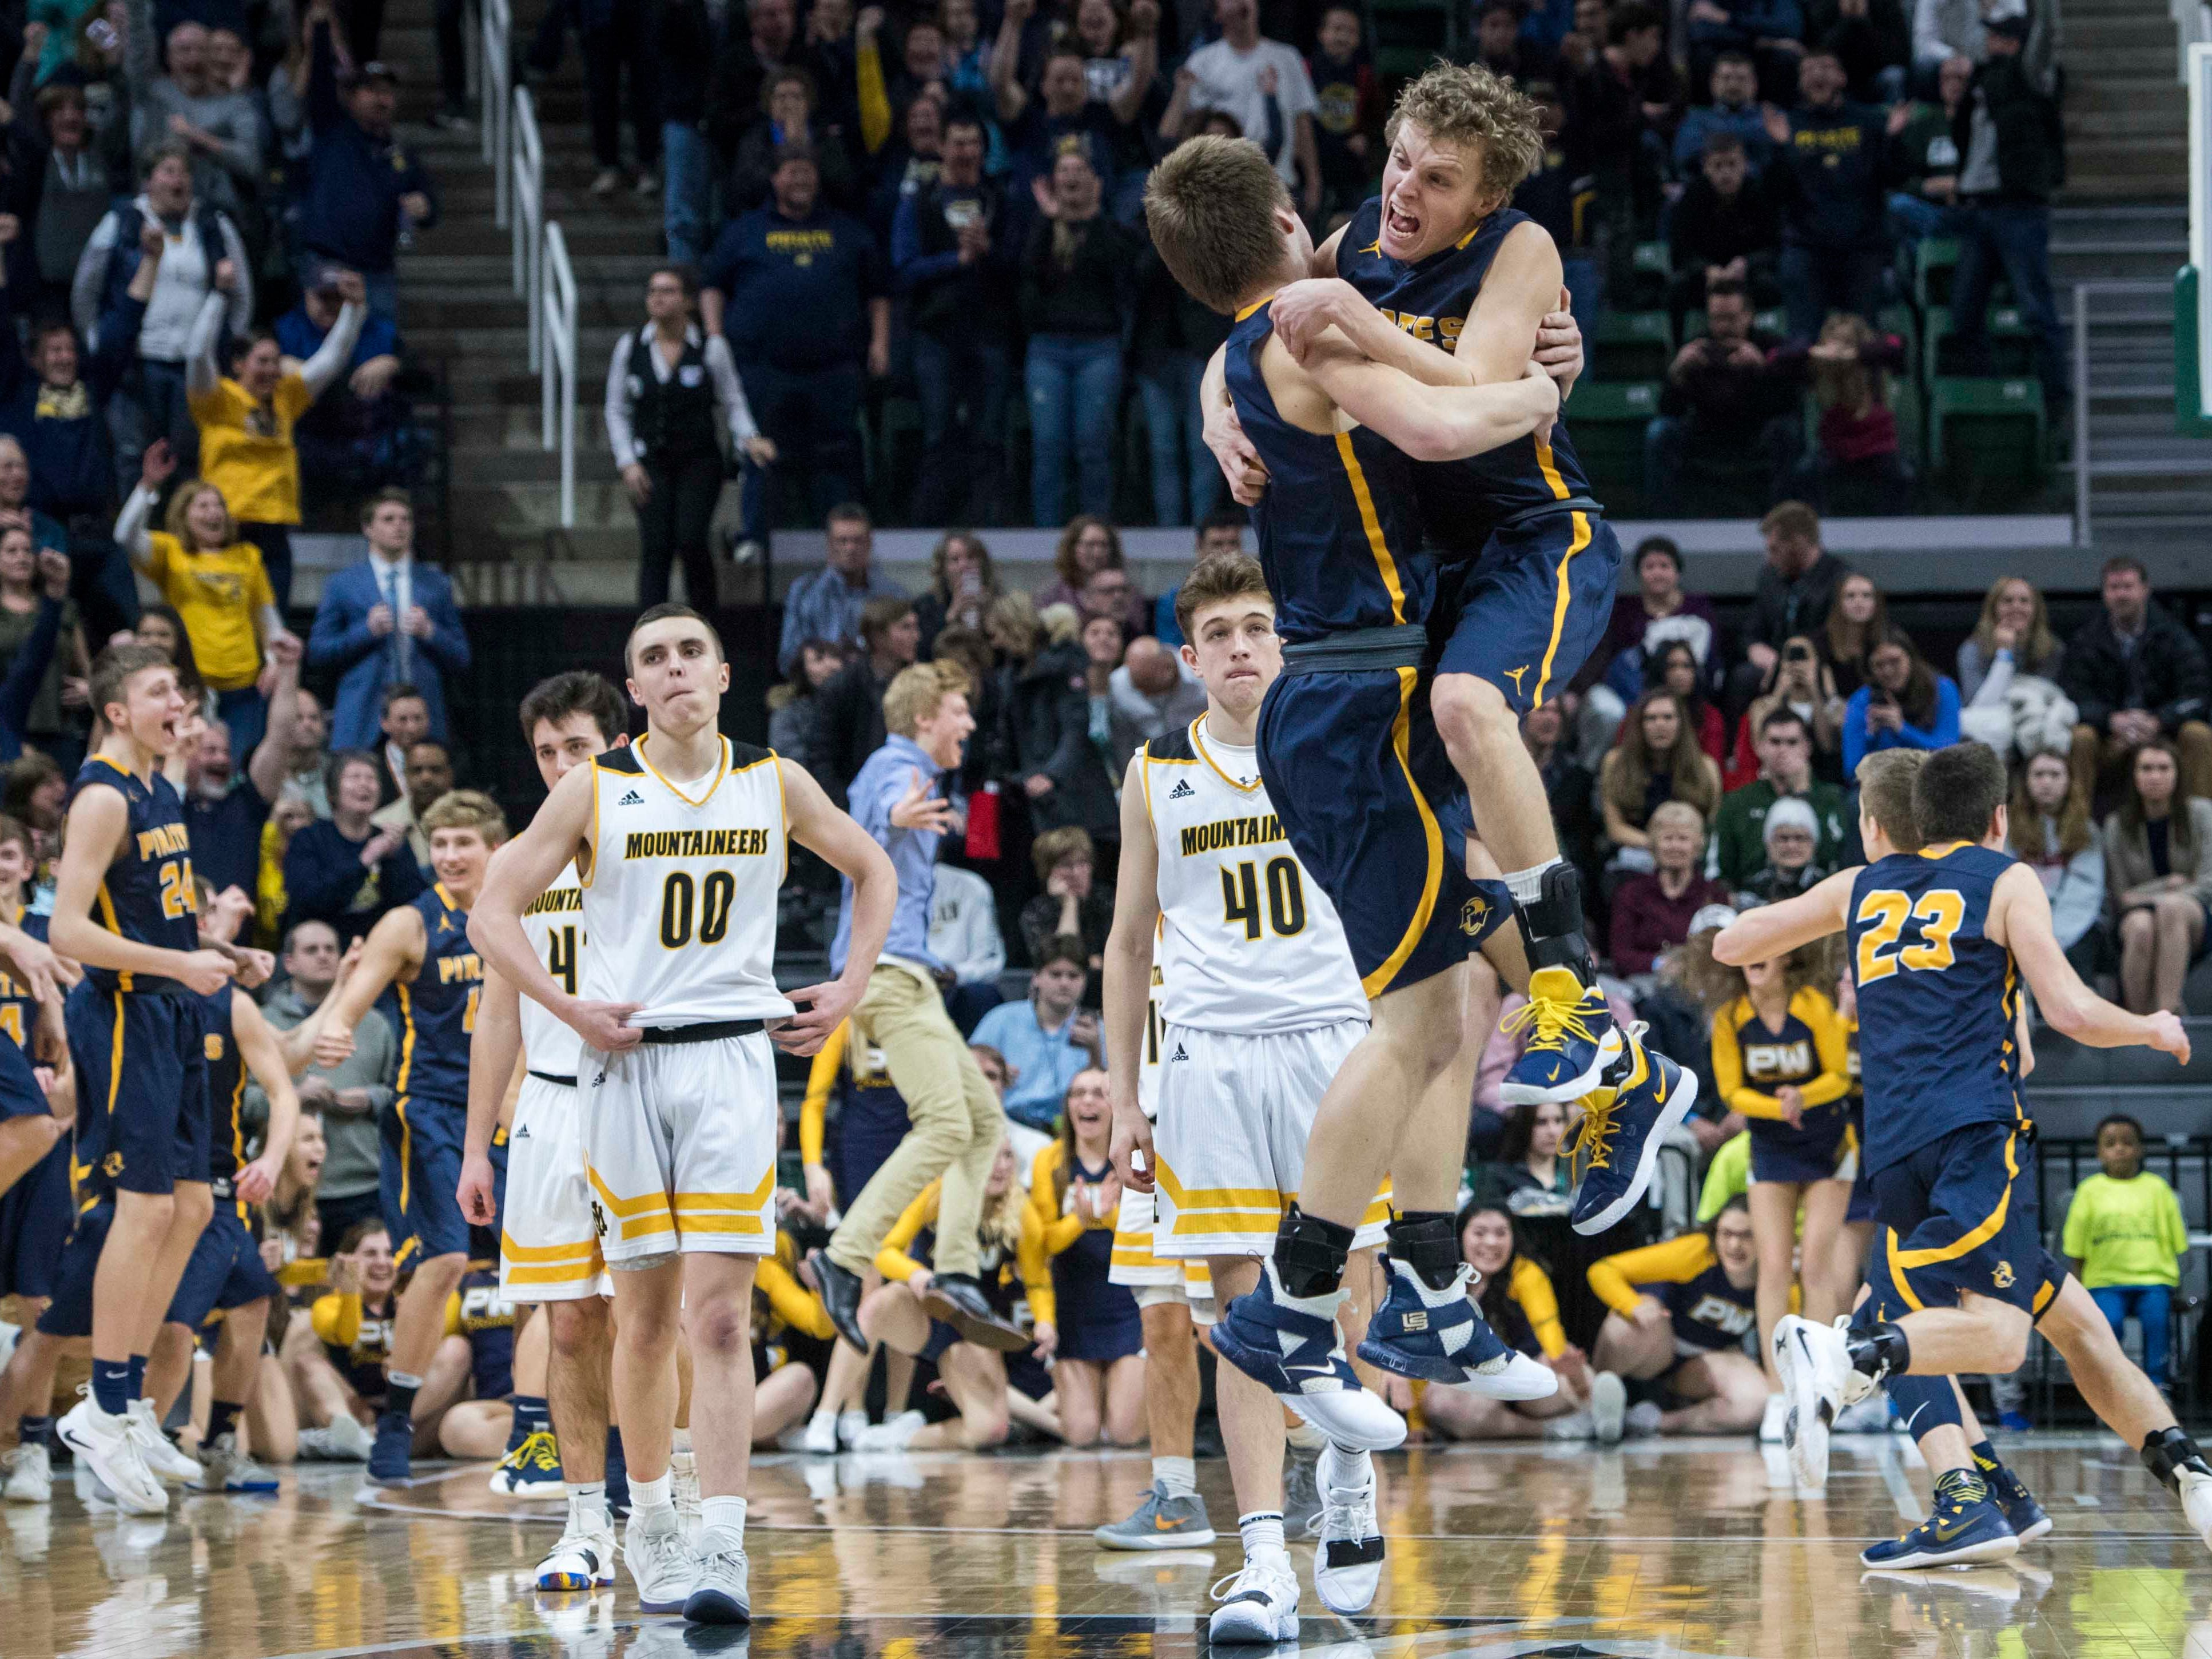 Pewamo-Westphalia's Nathan Wirth, left, and Collin Trierweiler celebrate with a leaping embrace after Trierweiler made the game-winning basket to defeat Iron Mountain 53-52 in the MHSAA Div. 3 championship game at Breslin Center in East Lansing on Saturday, March 16, 2019.